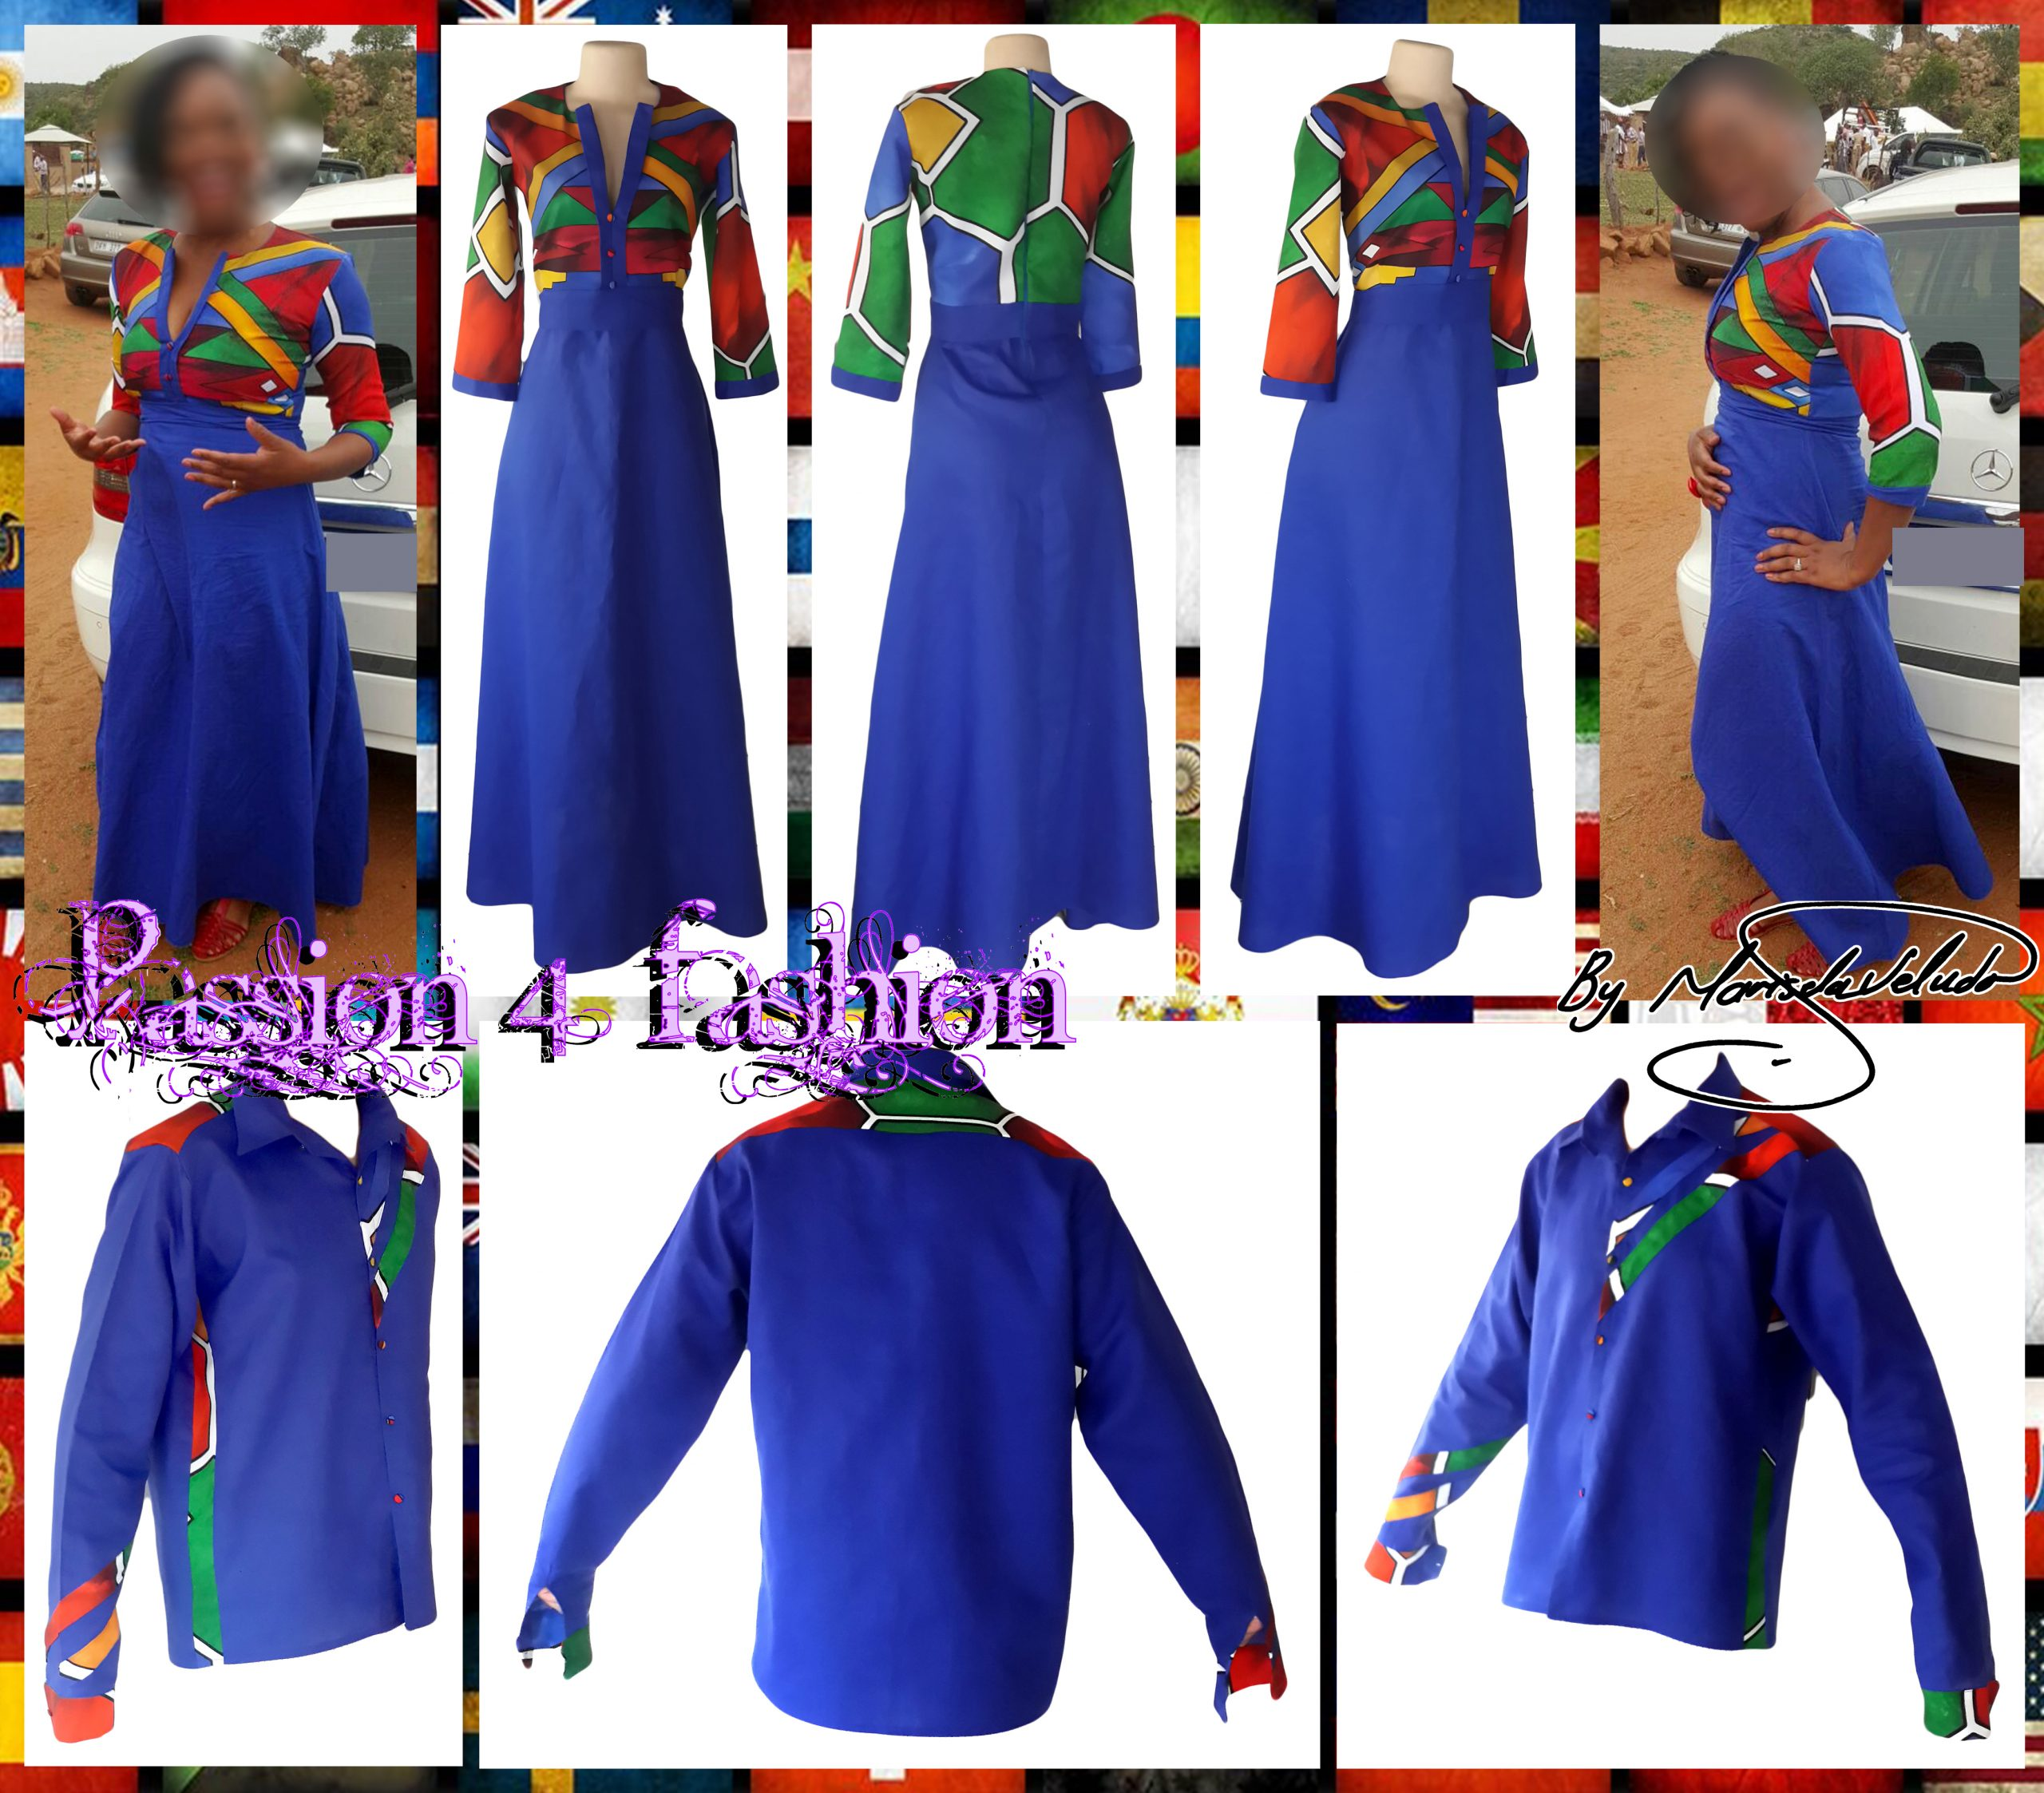 Royal blue ndebele dress and matching ndebele shirt 2 royal blue and ndebele empire fit dress. Bodice with ndebele print and 3/4 sleeves and an under bust belt. Mens matching ndebele shirt in royal blue. Traditional wedding attire.